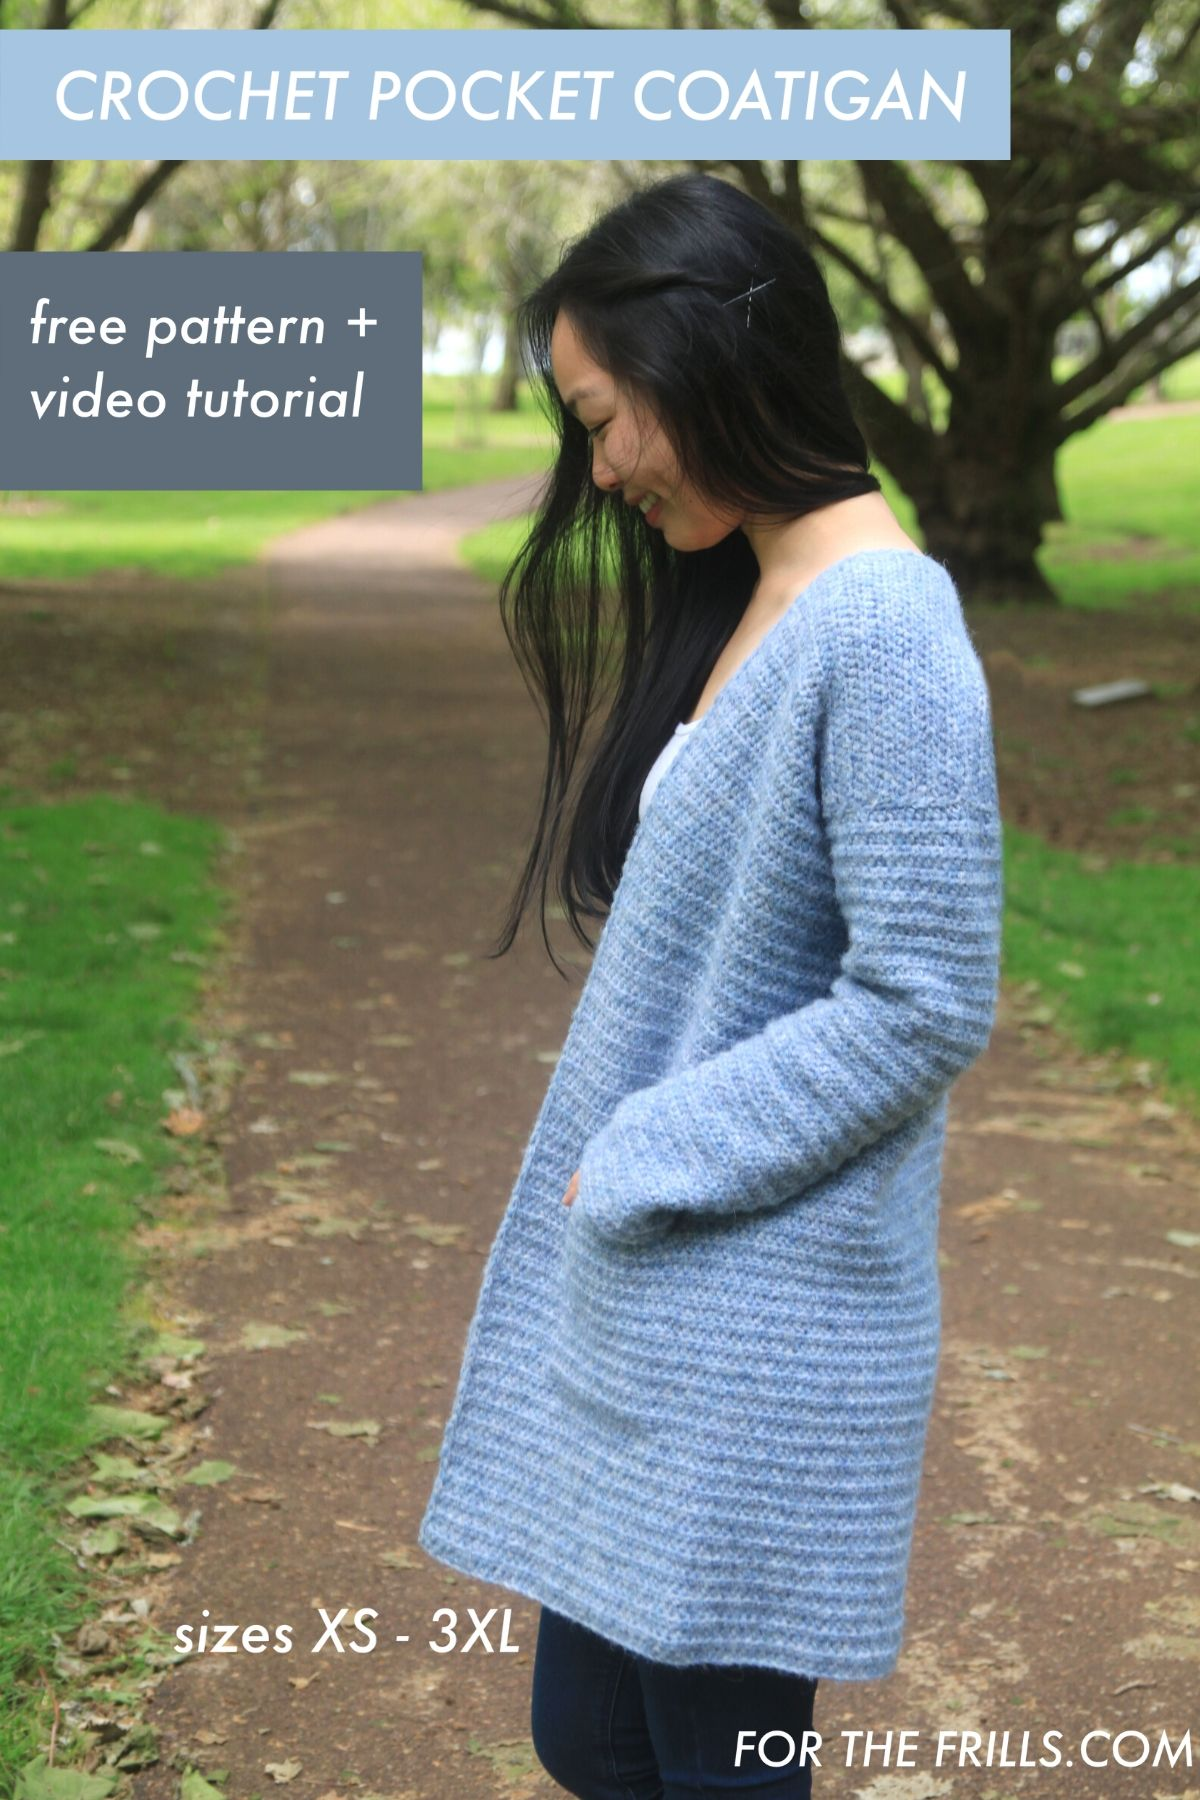 crochet coat with pockets tutorial and free pattern